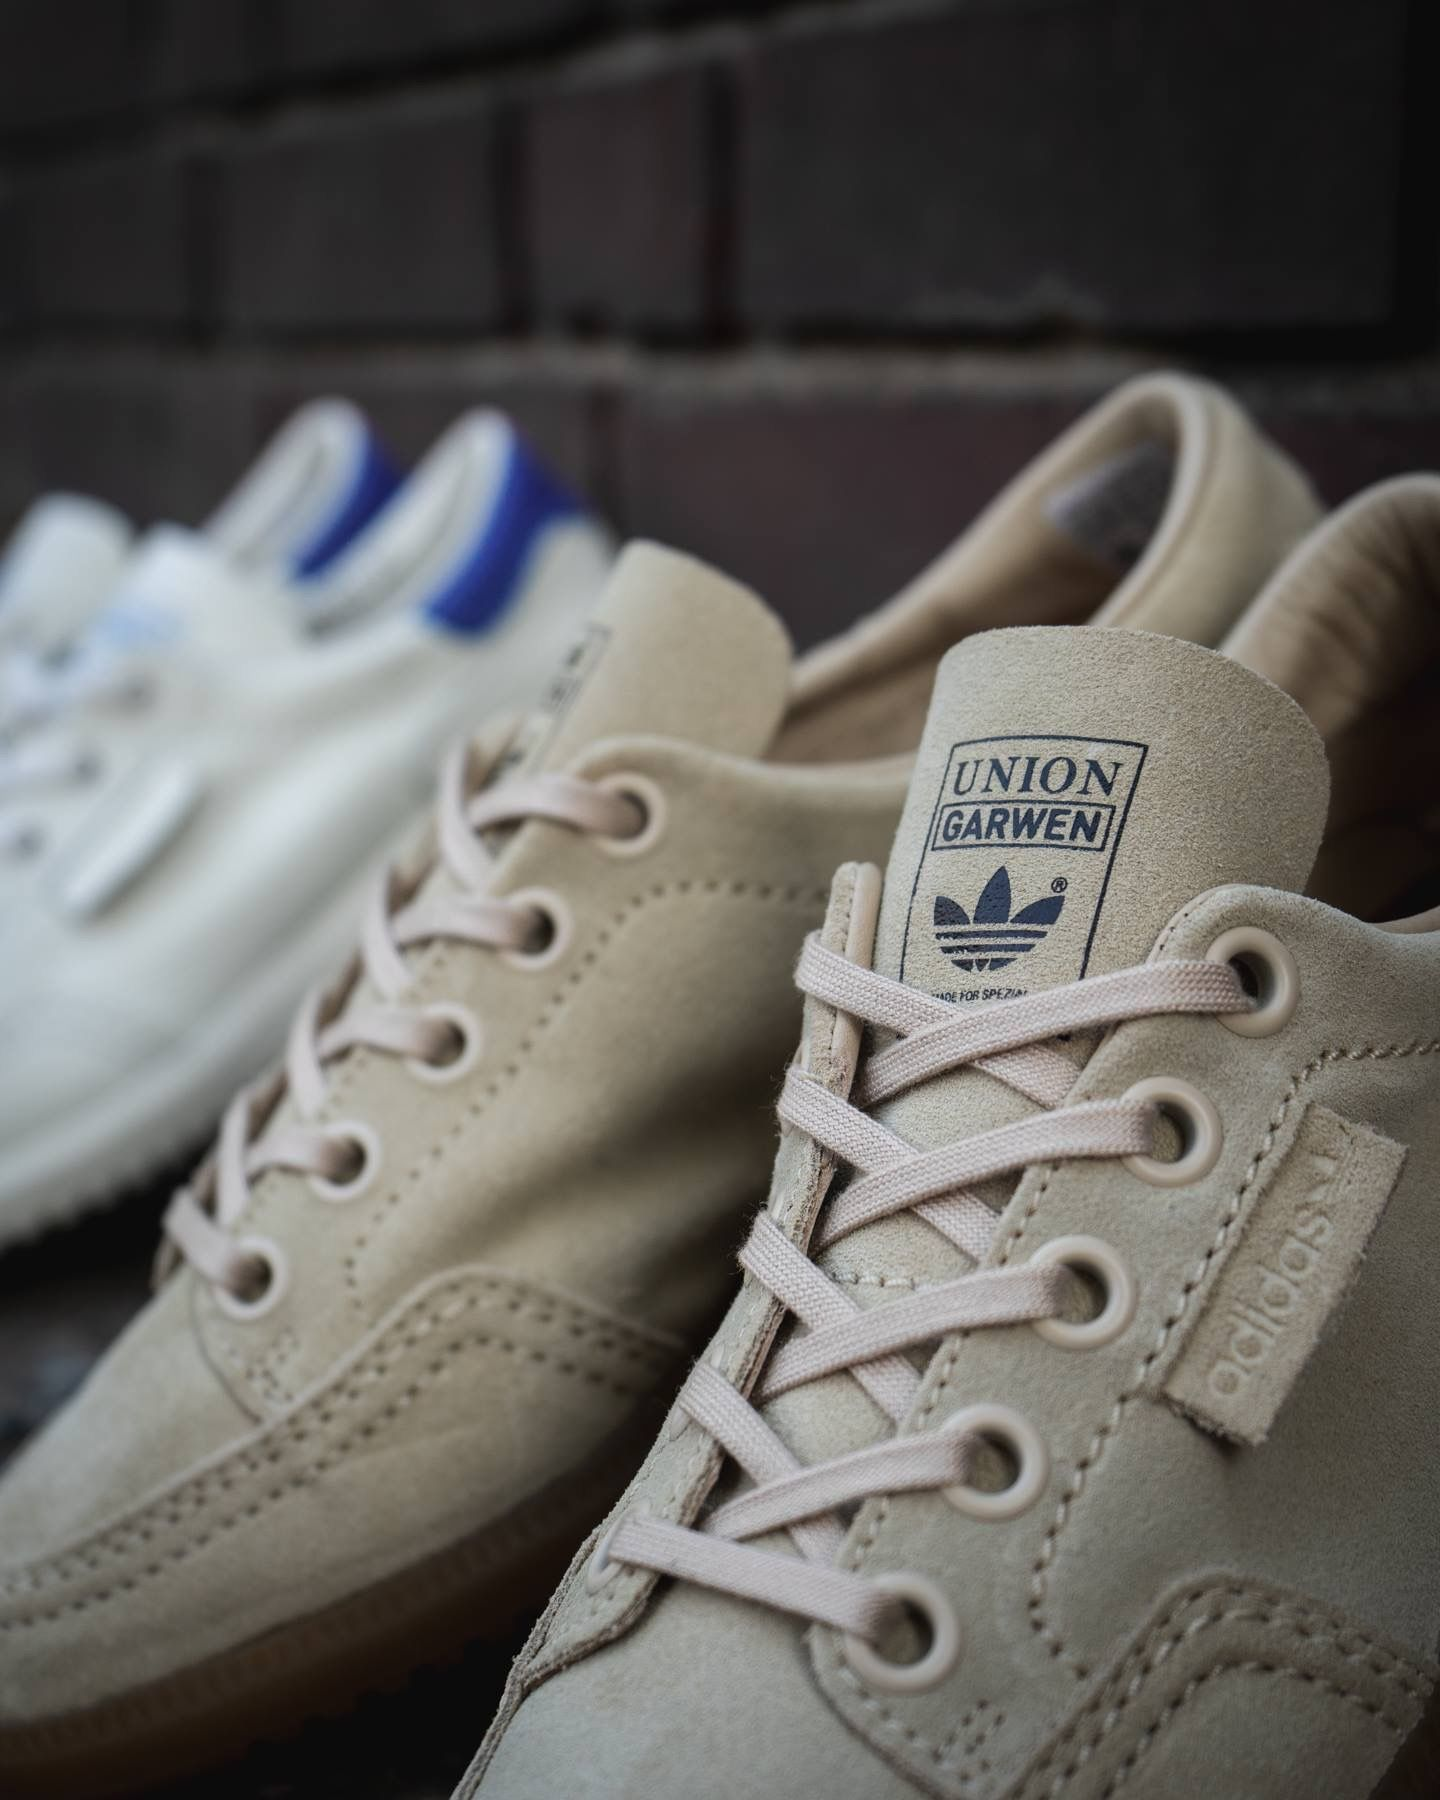 Union x adidas Originals Garwen SPZL  261dde8111